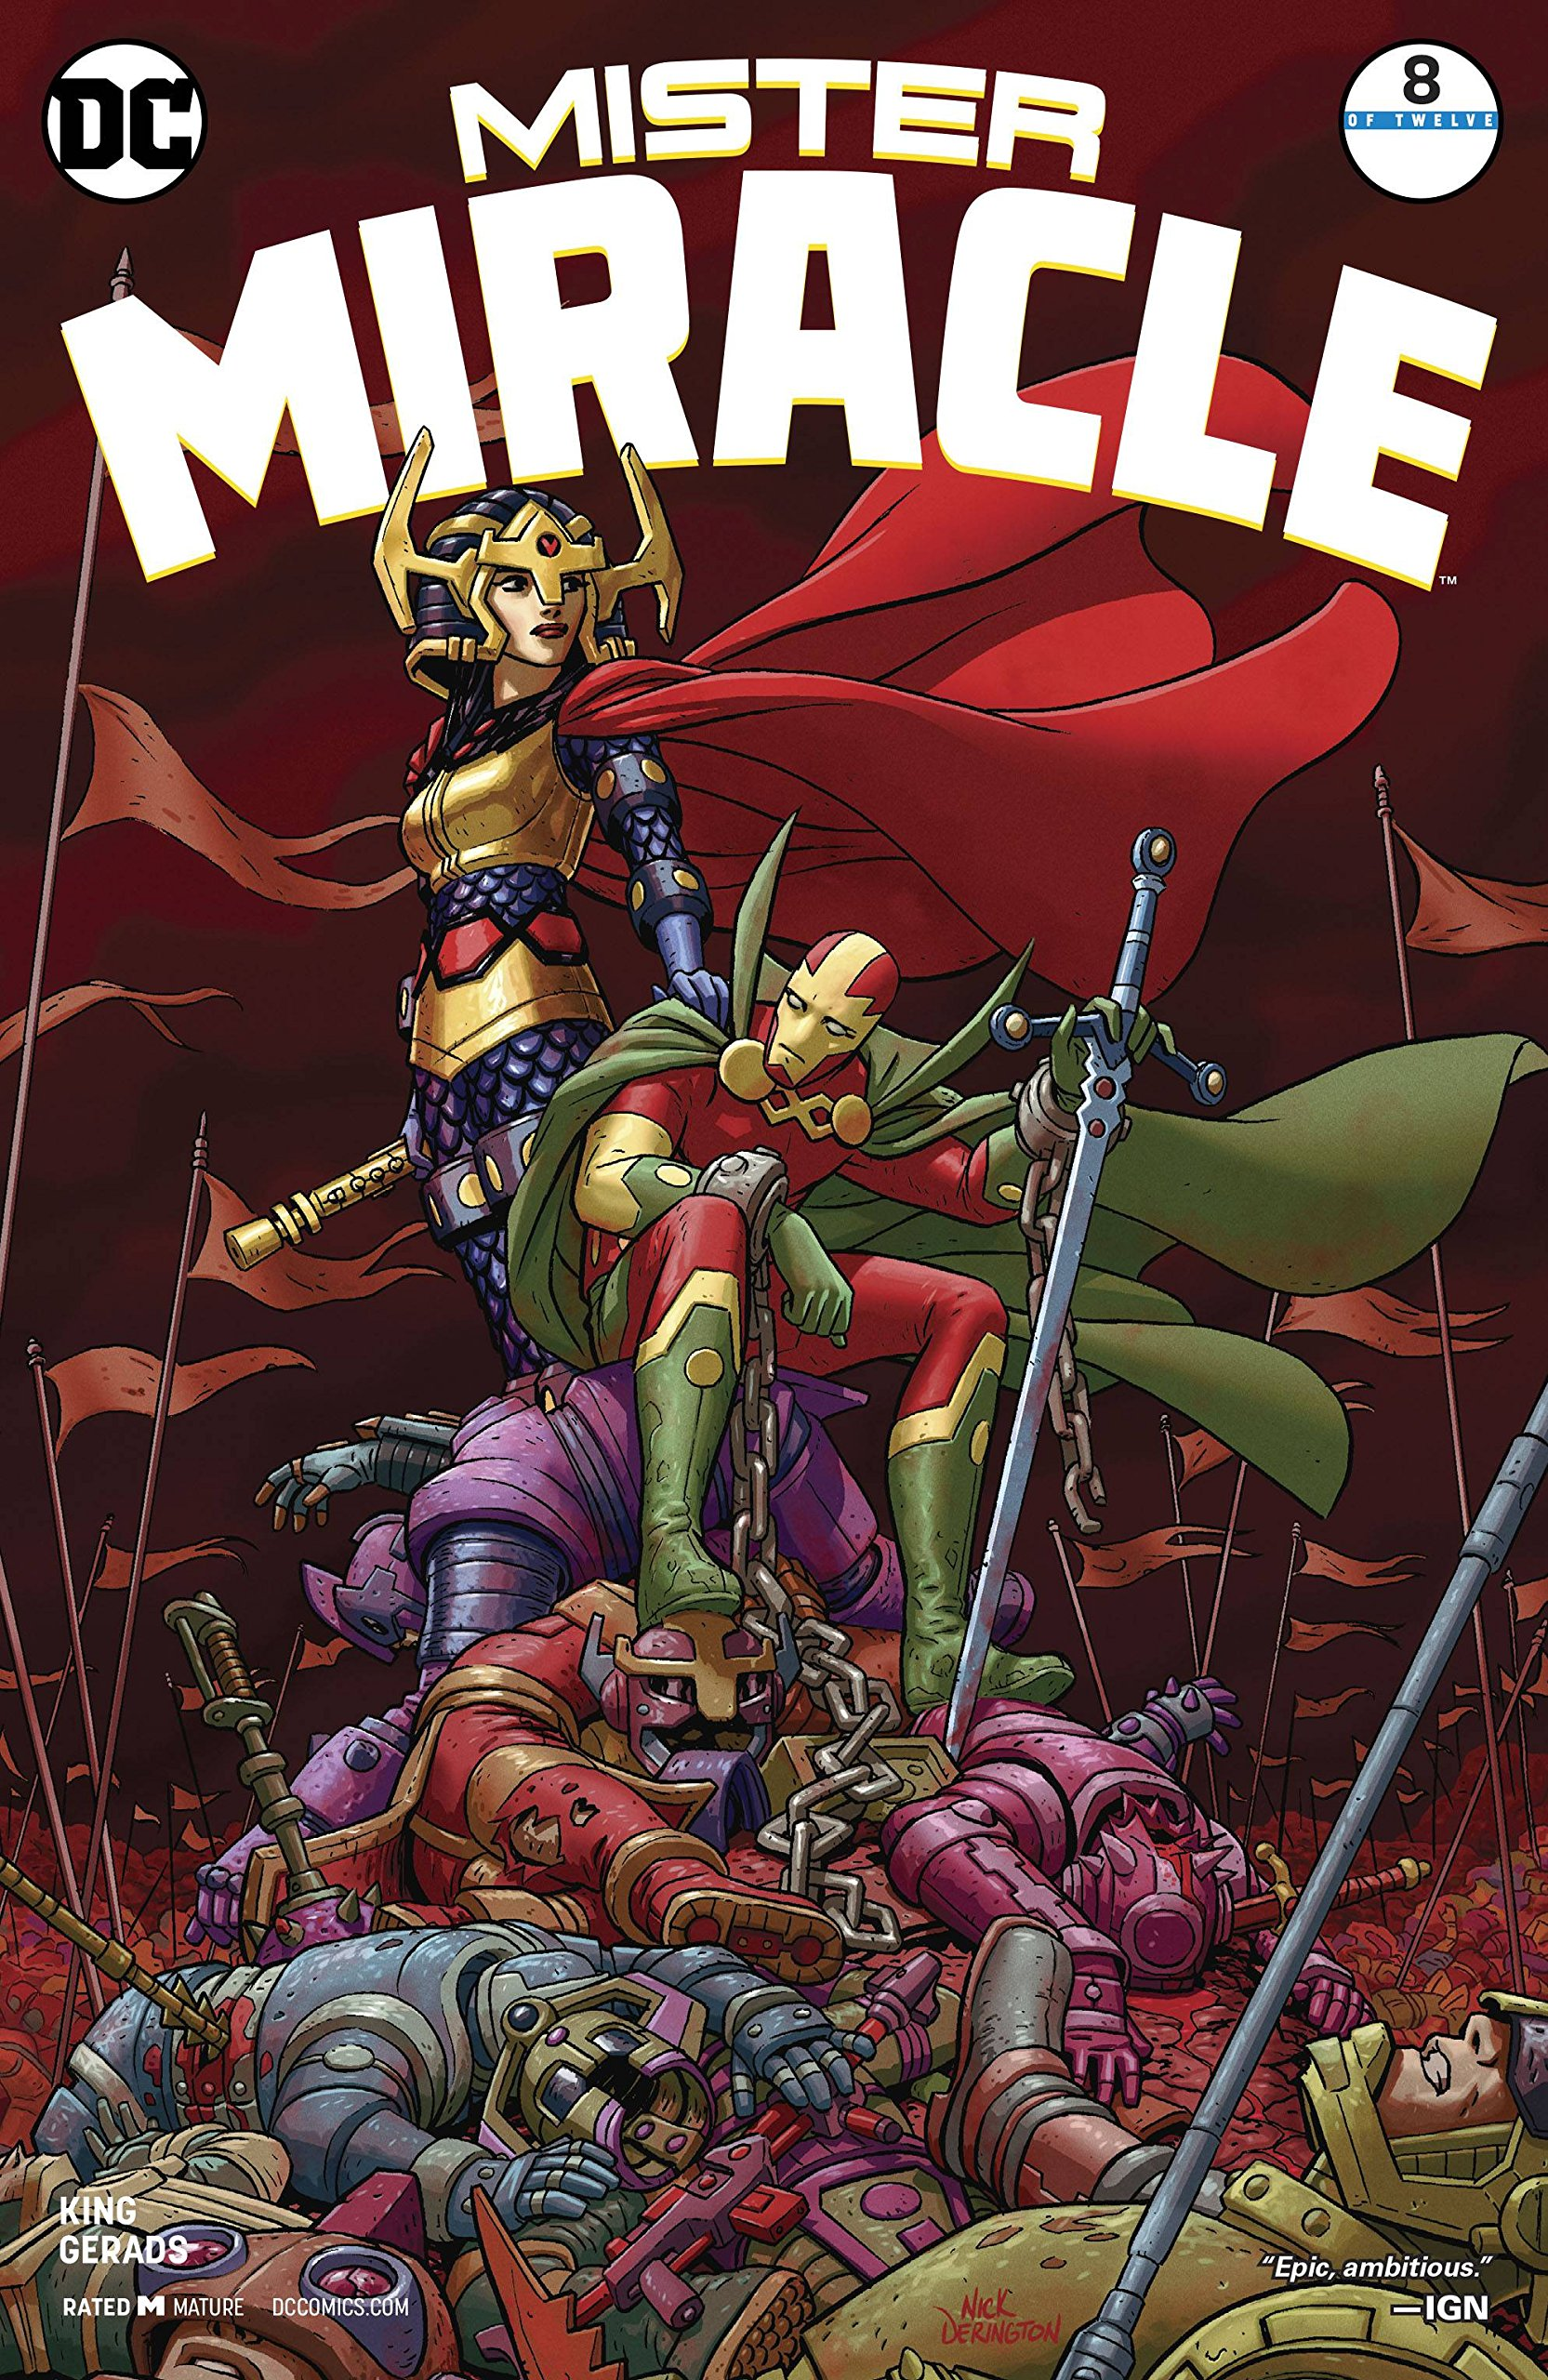 Download MISTER MIRACLE #8 (OF 12) (MR) RELEASE DATE 4/18/2018 pdf